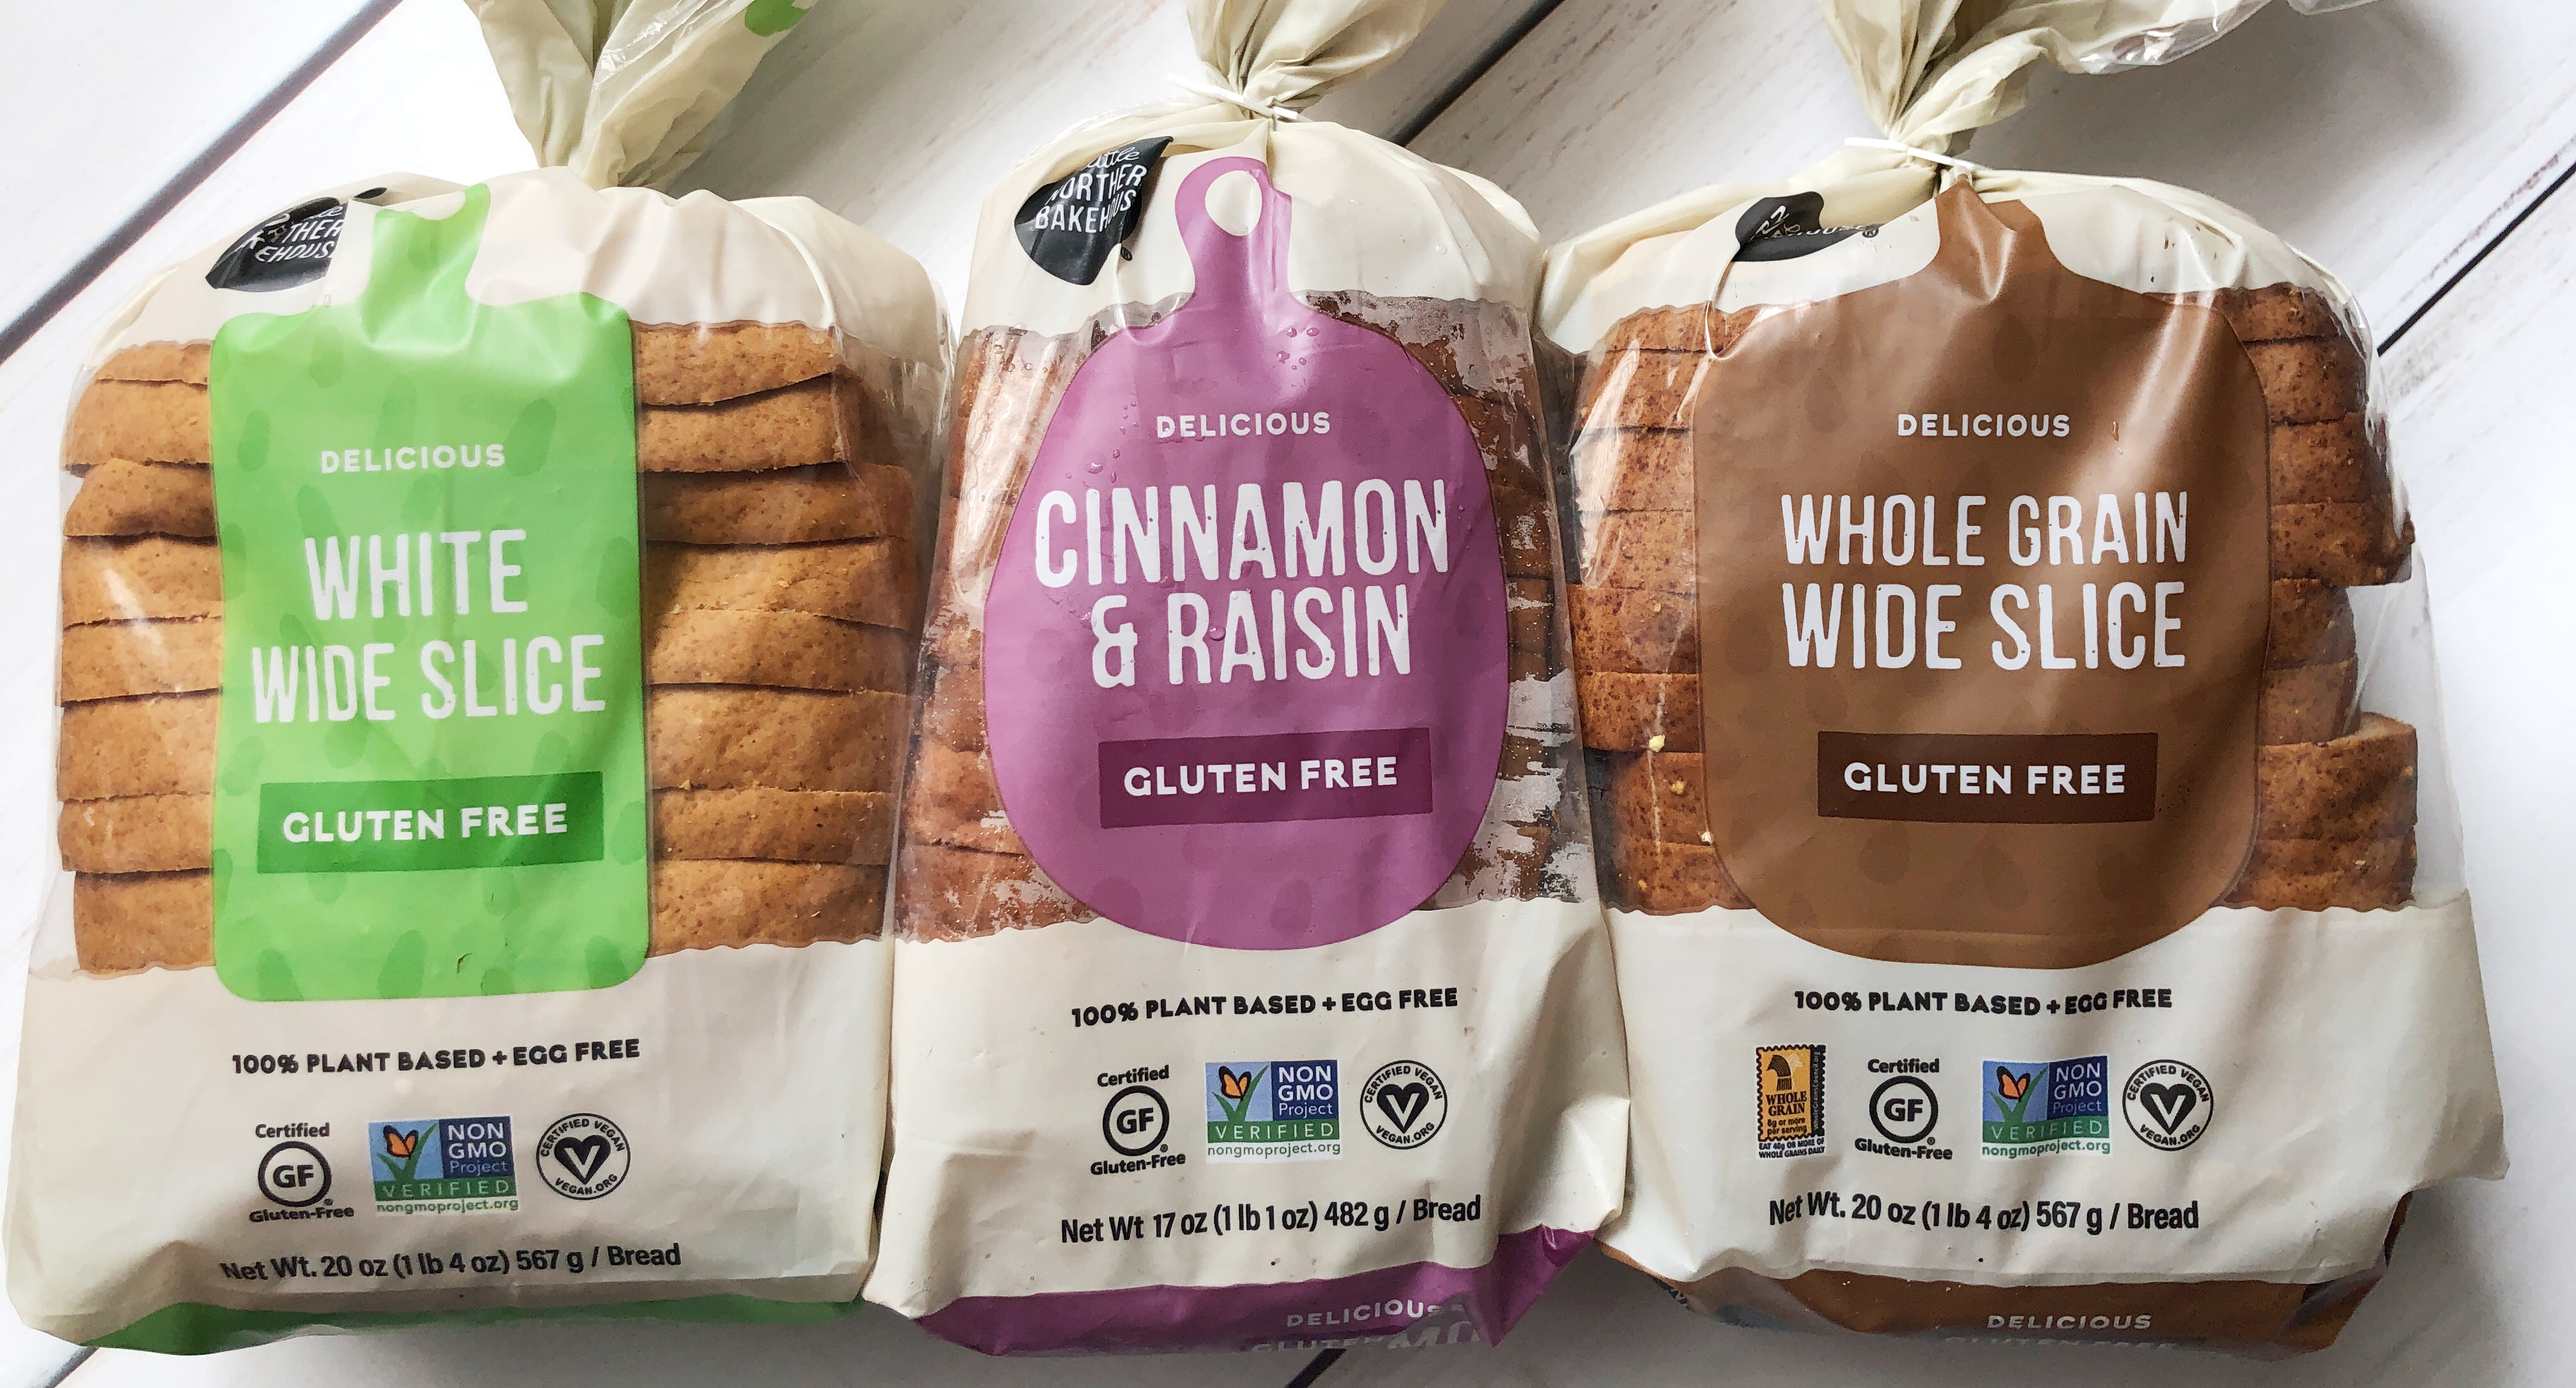 gluten free bread options from Little Northern Bakehouse